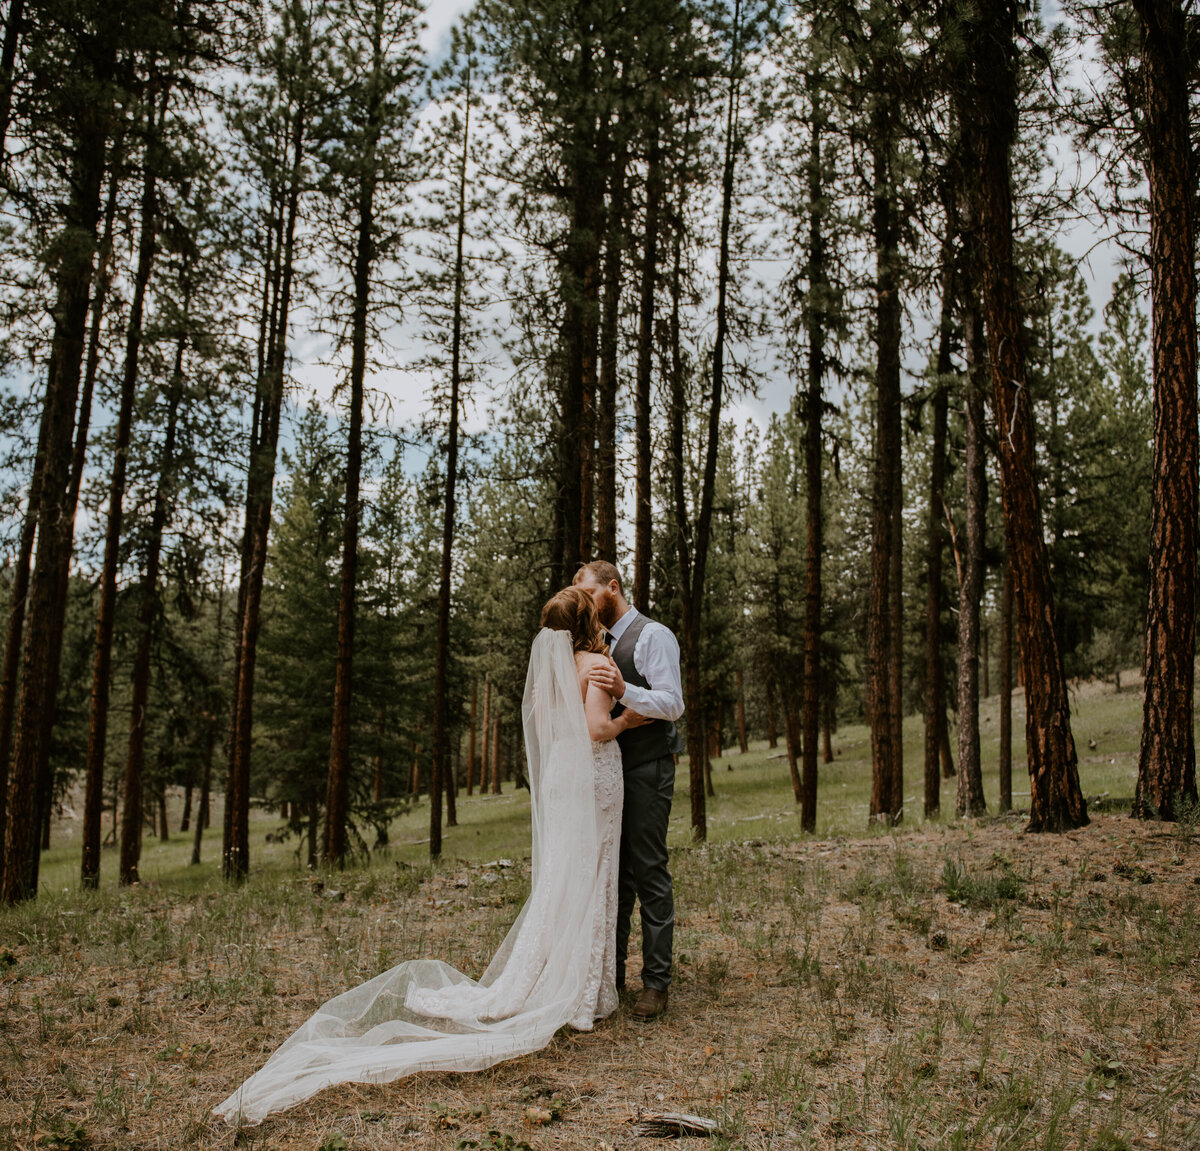 ochoco-forest-central-oregon-elopement-pnw-woods-wedding-covid-bend-photographer-inspiration1605